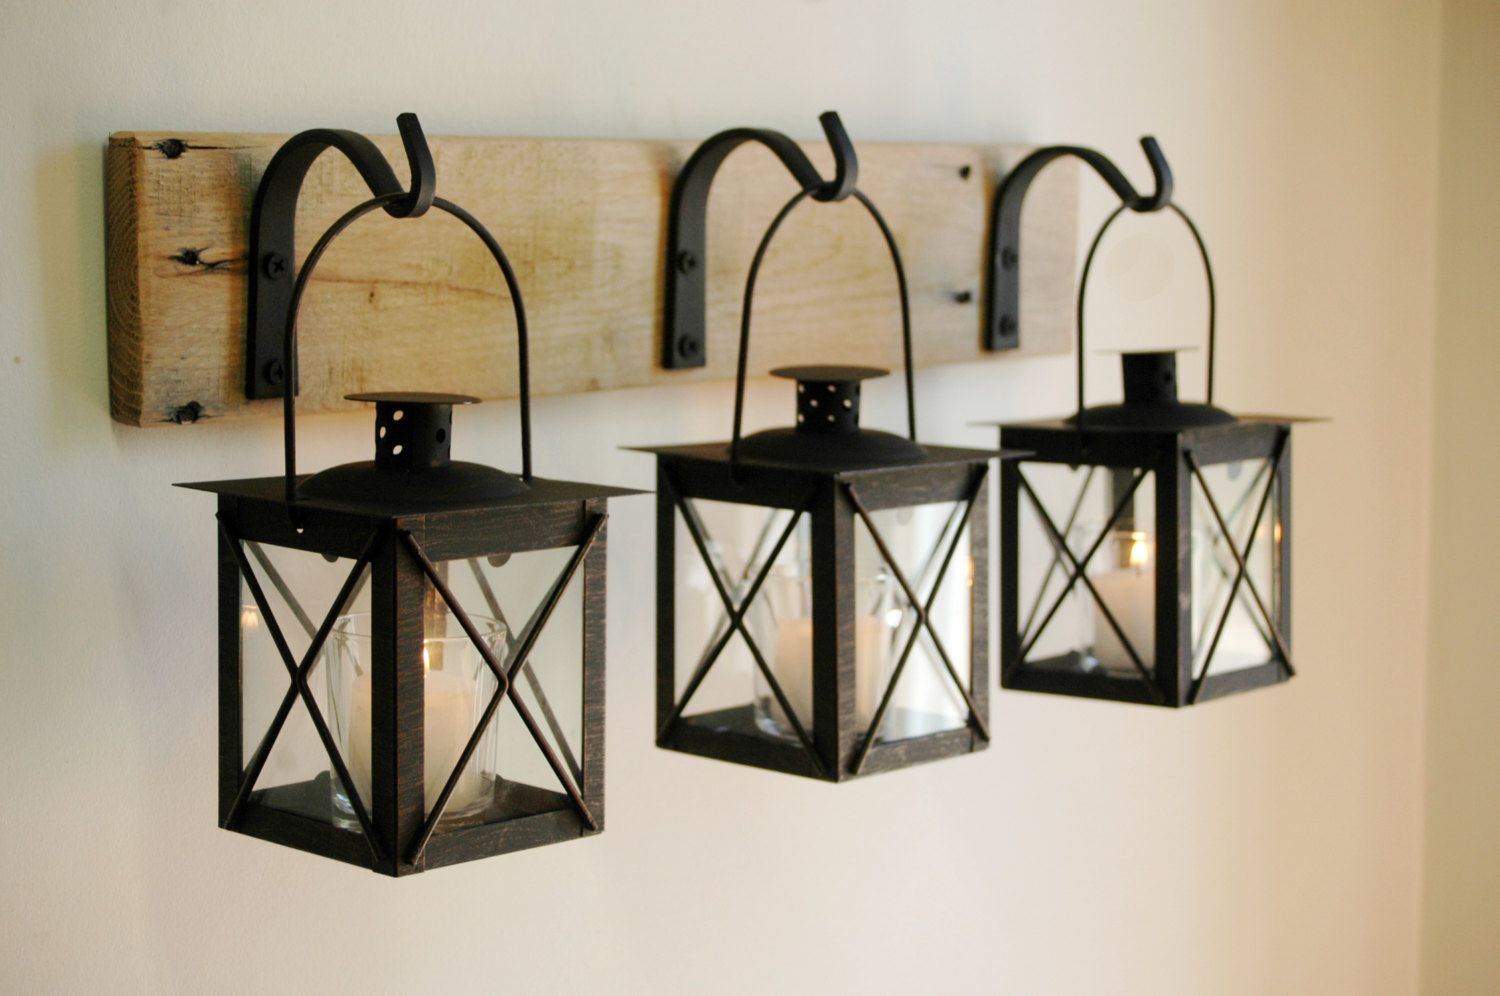 Wall Lantern Indoor : Luminara Lantern - Indoor use - ideas? Black lantern, Wall decor and Unique wall decor